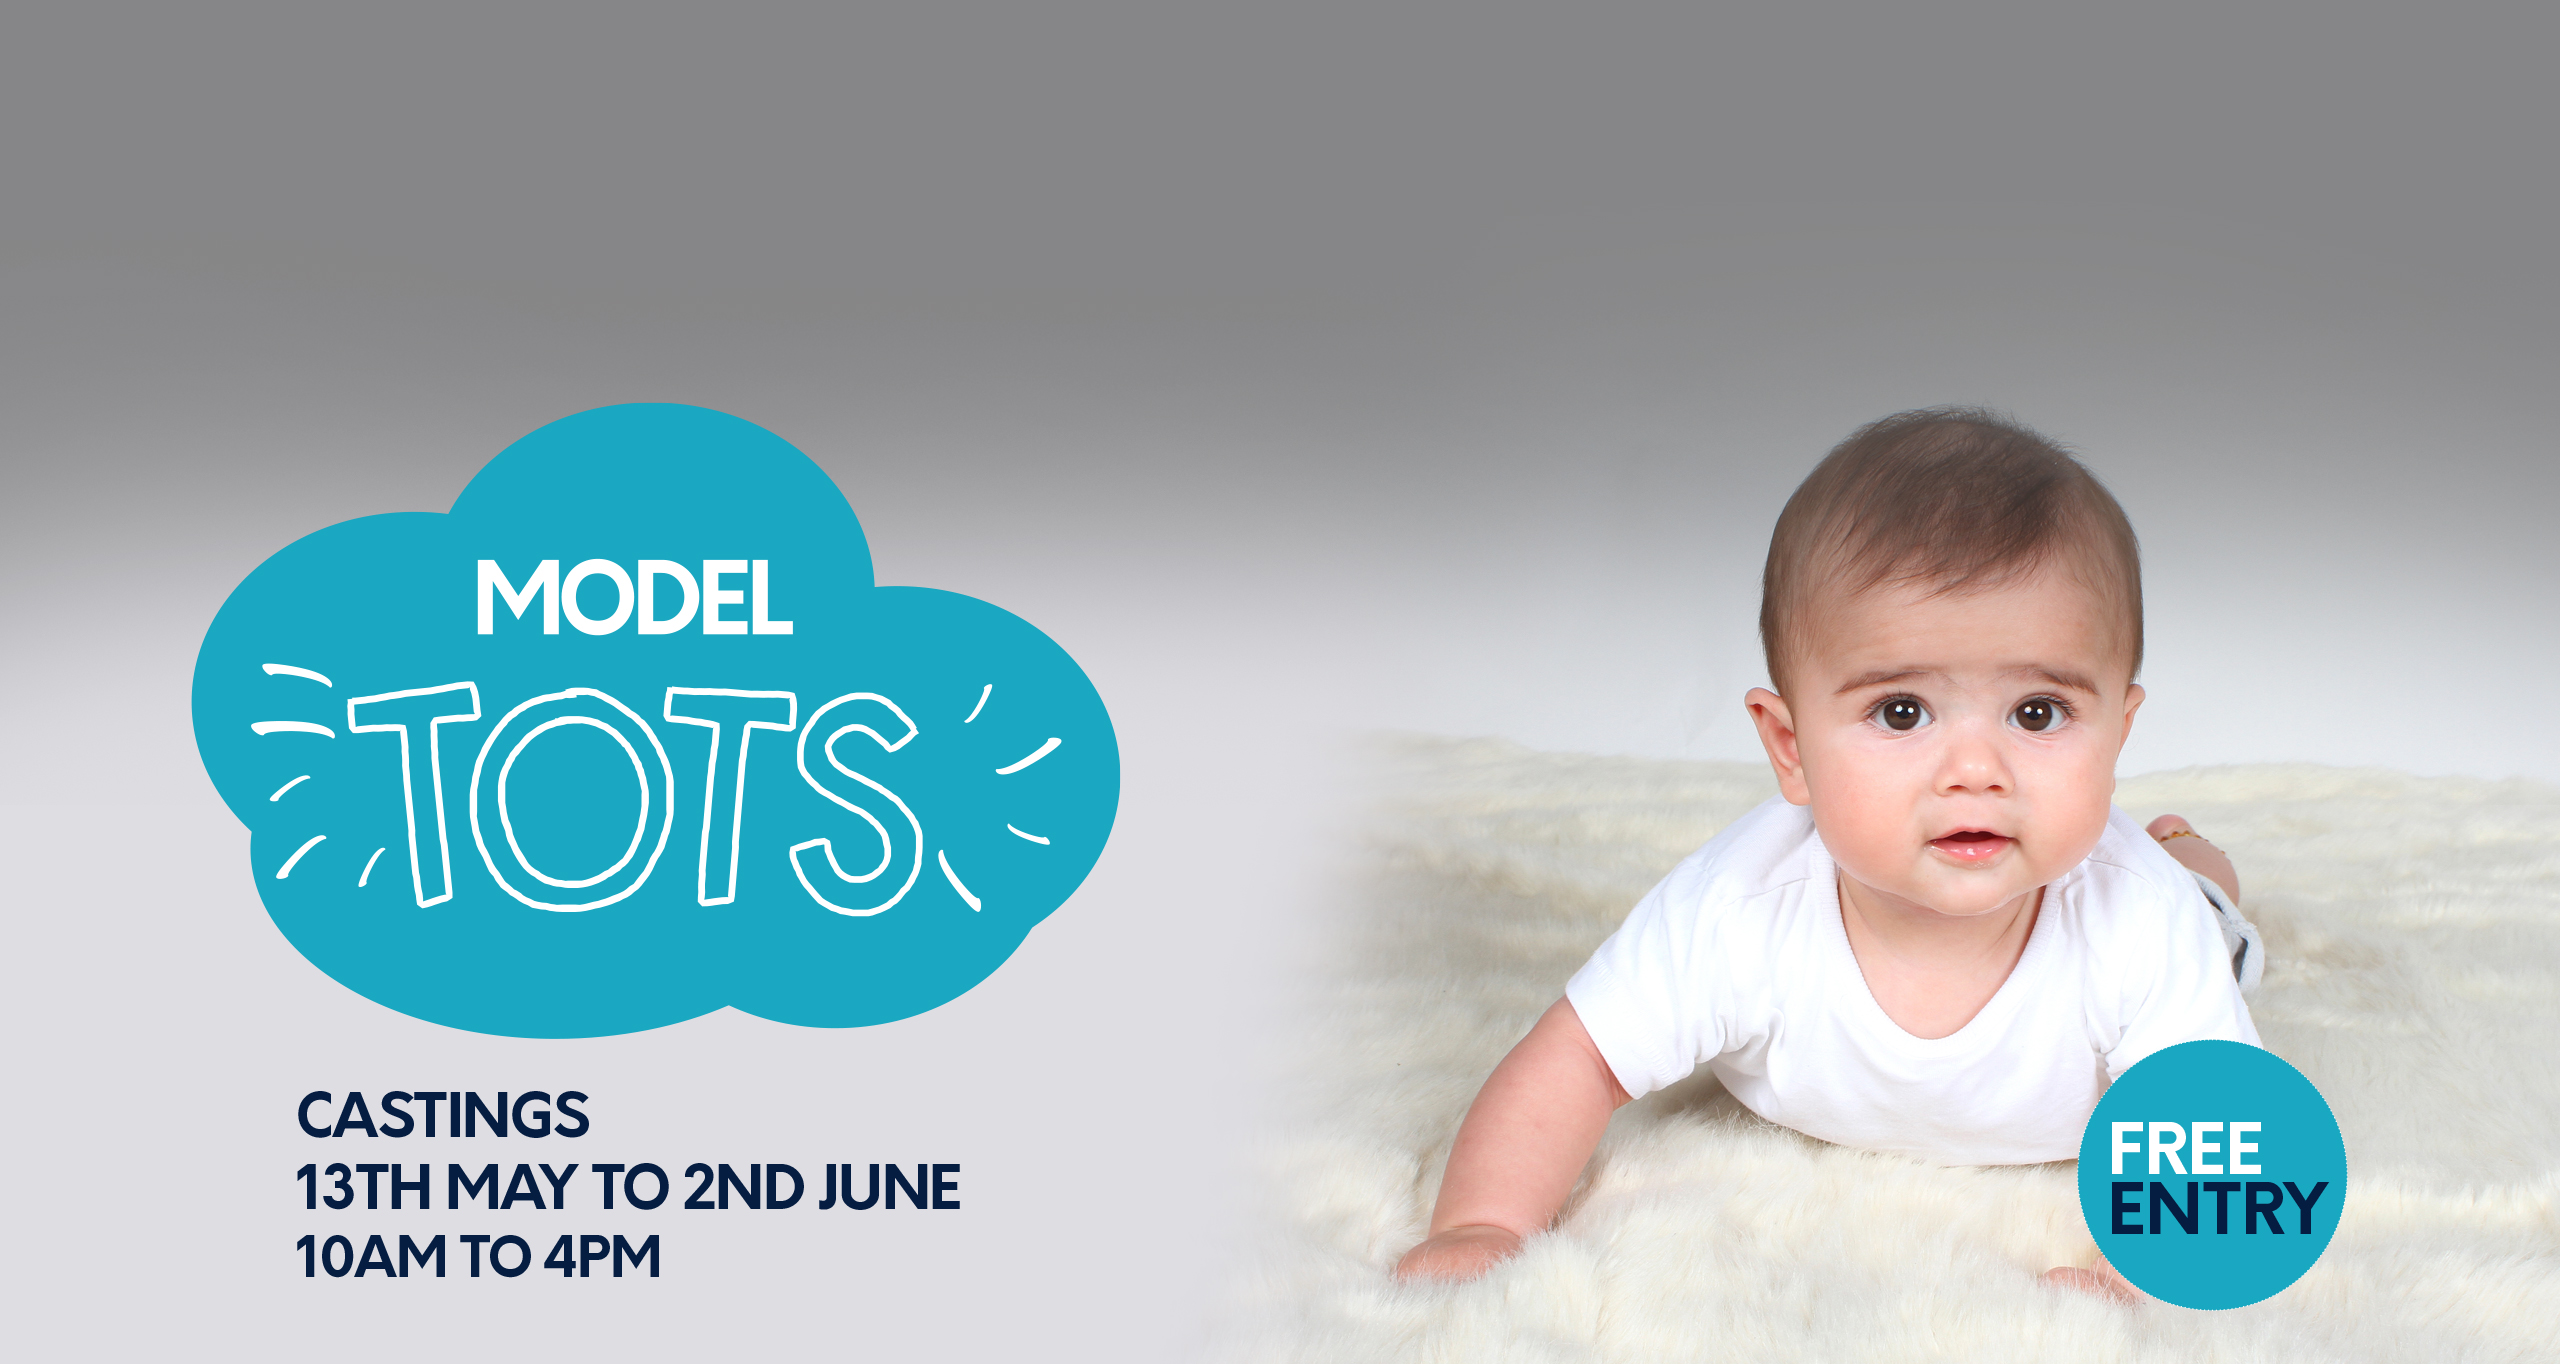 Bexleyheath_Model_Tots_2019_Web_Slide